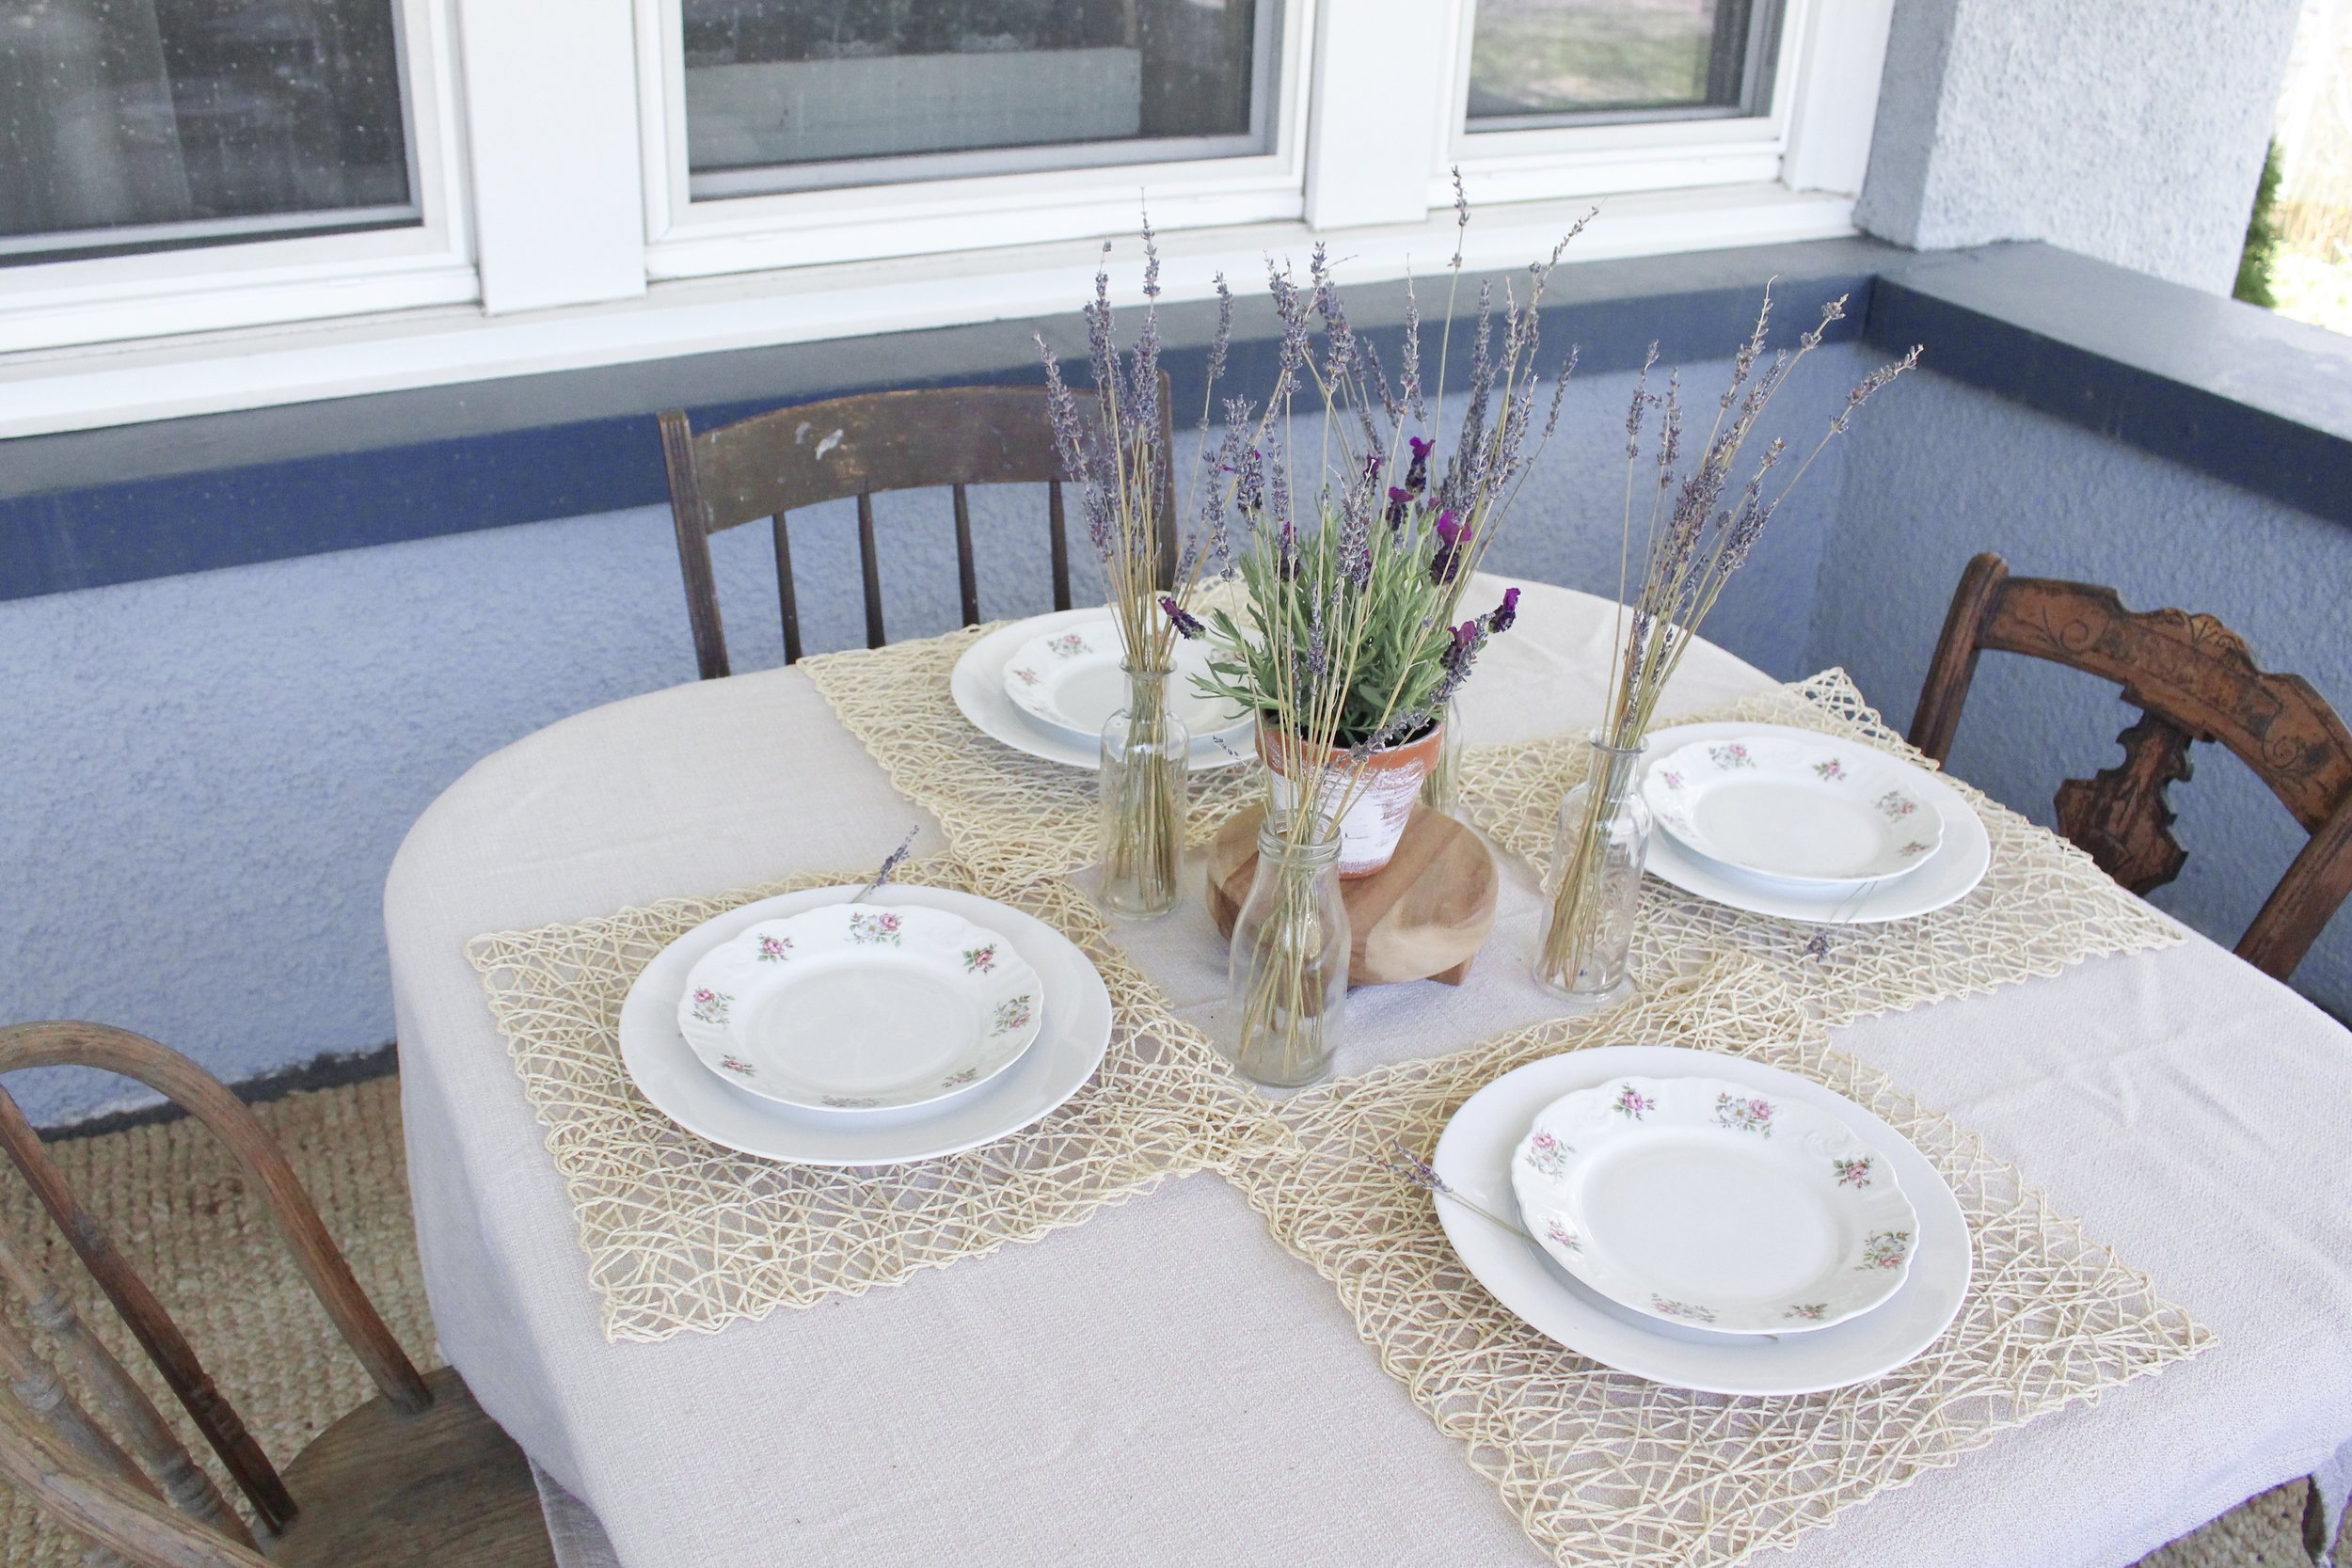 Overview of the tablescape